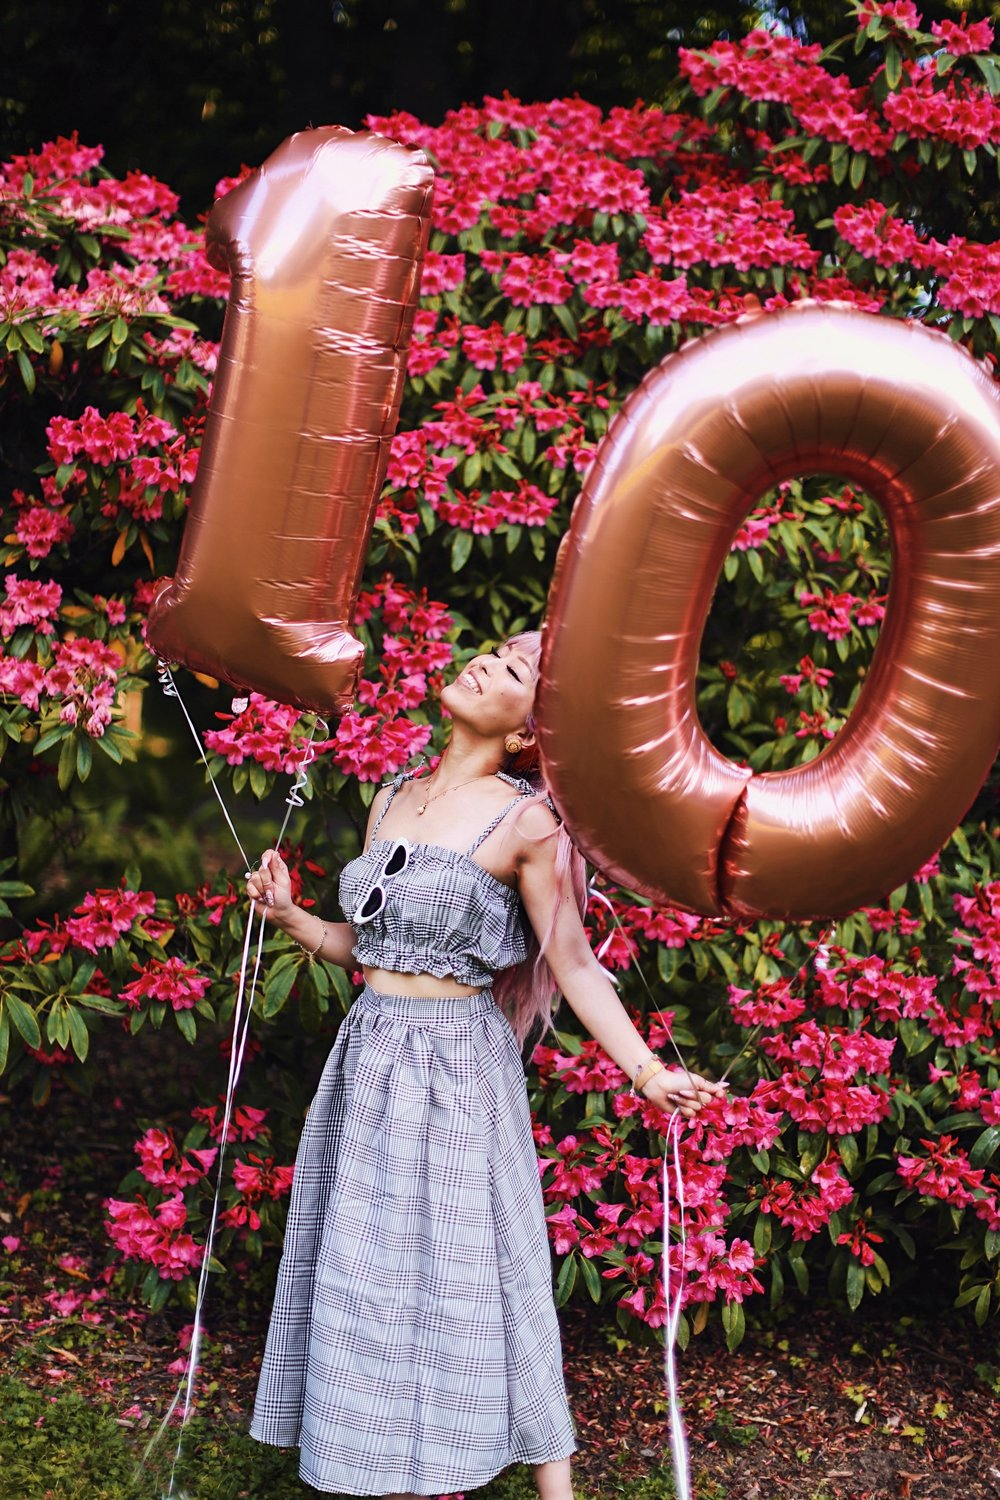 Aika's Love Closet-Seattle Style Life Style Blogger-Japanese-10 Year Anniversary-living in America-what I've learned from Living Abroad-life lessons-pink hair-zero uv heart sunglasses-rose gold balloons-smile 2